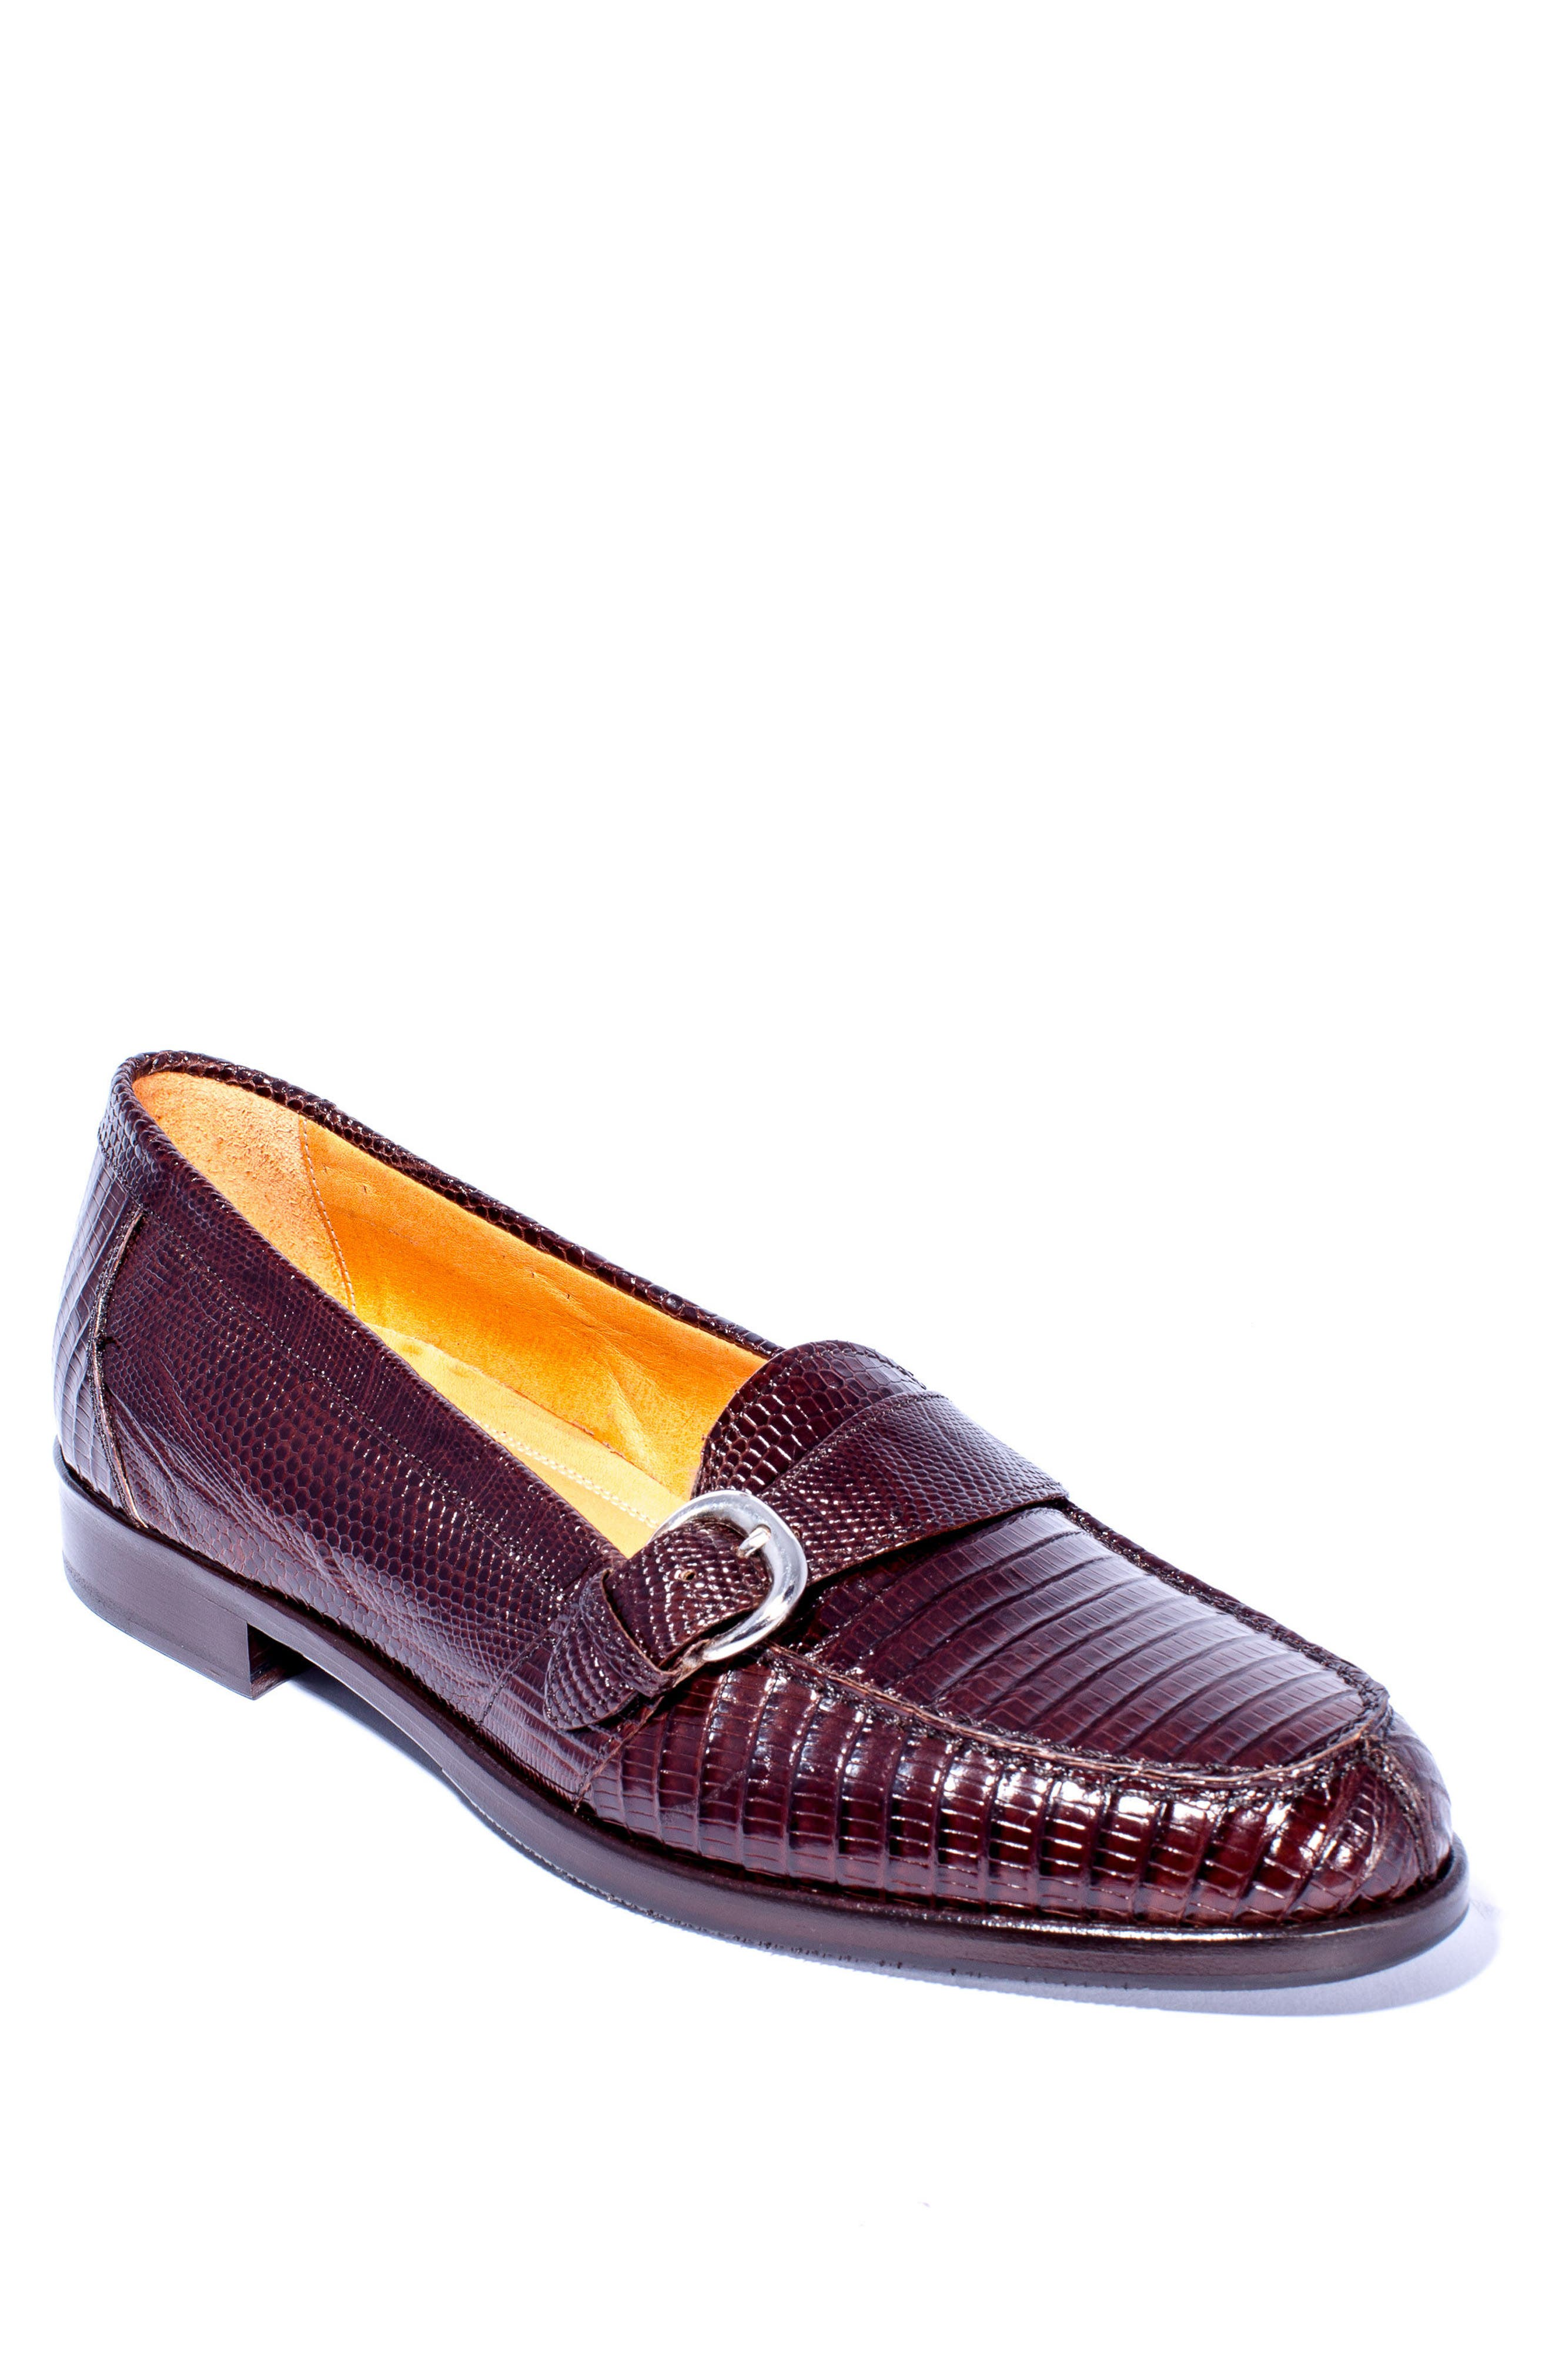 Orlando Teju Ostrich Loafer,                             Main thumbnail 2, color,